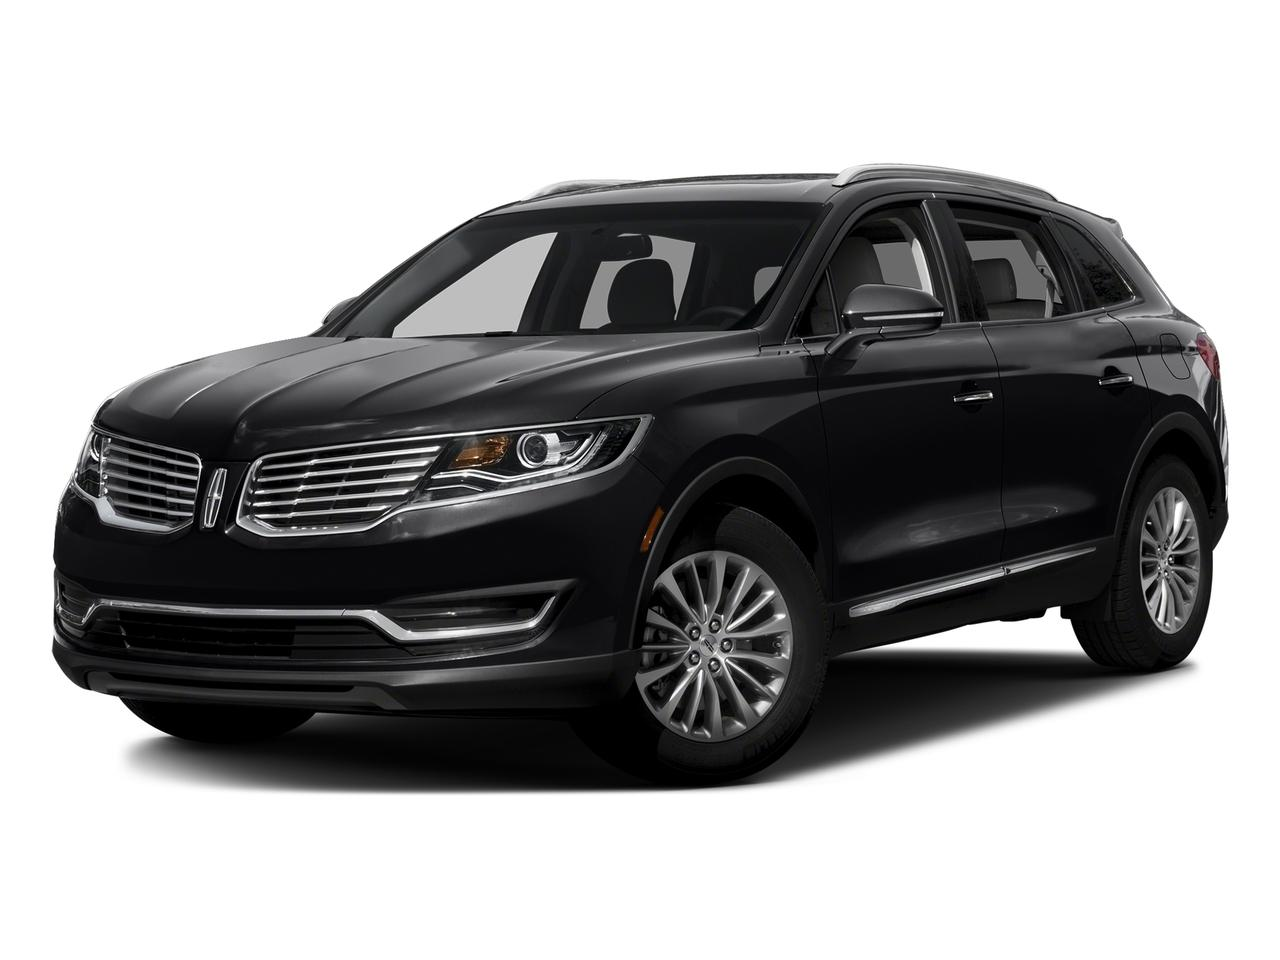 2017 LINCOLN MKX Vehicle Photo in Joliet, IL 60435